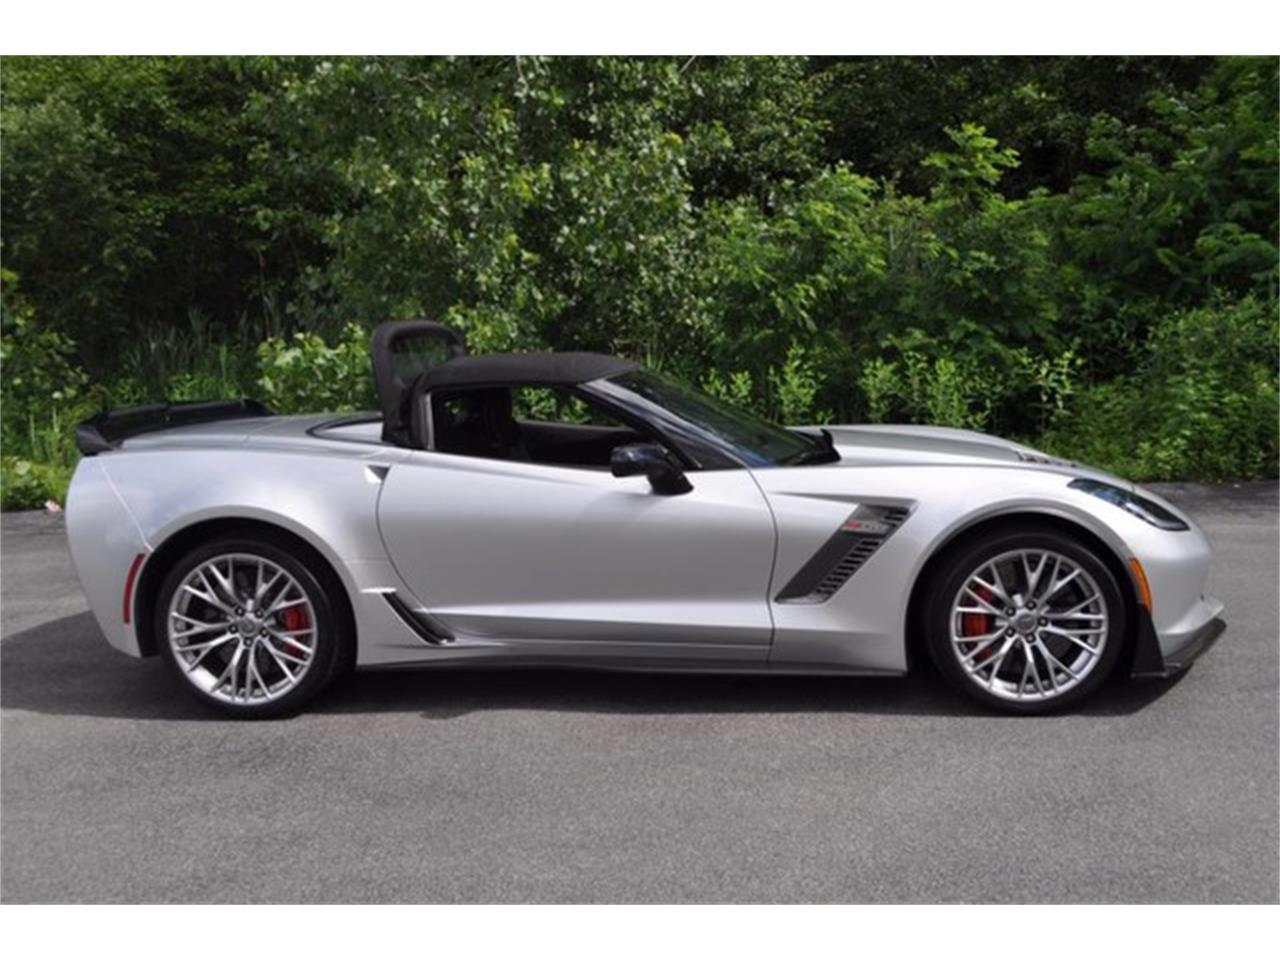 Large Picture of 2015 Chevrolet Corvette located in Clifton Park New York Auction Vehicle Offered by Prestige Motor Car Co. - LATH